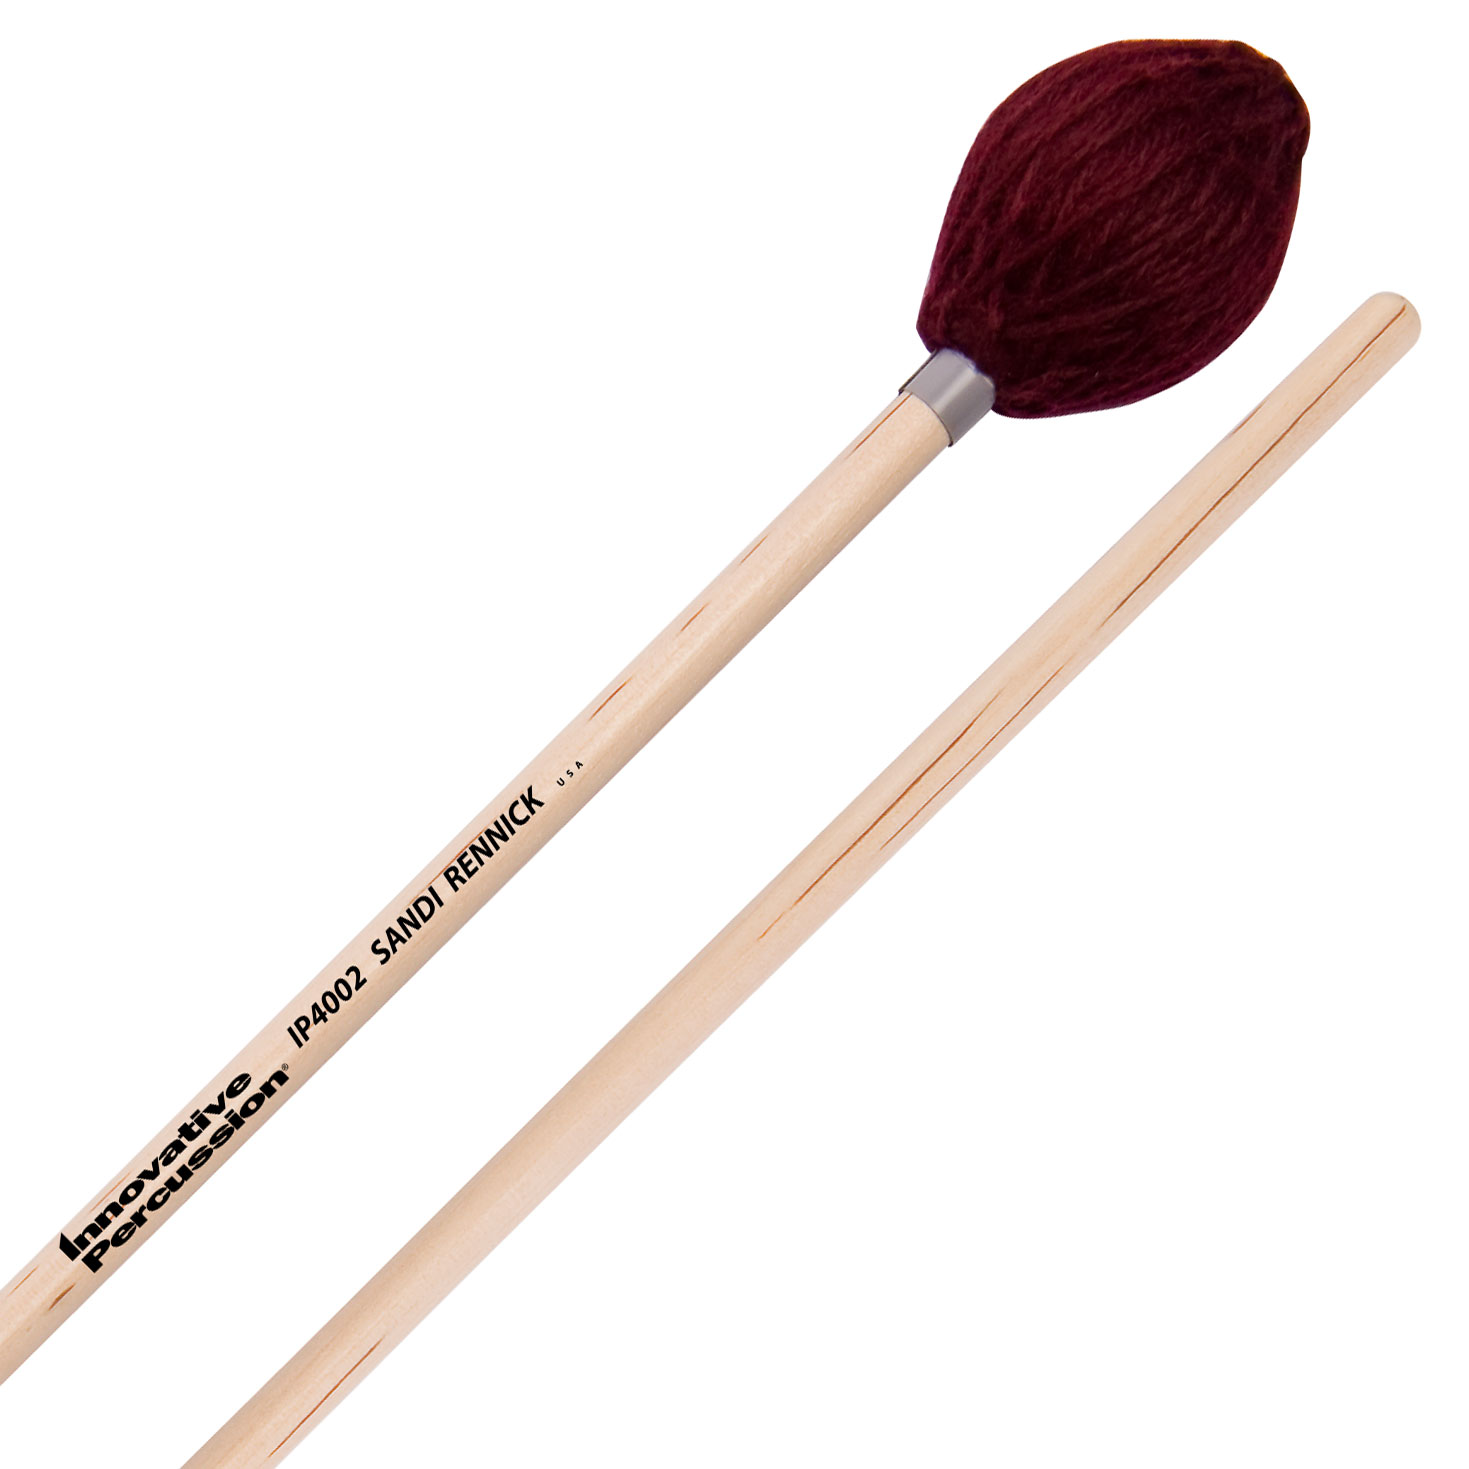 Innovative Percussion Sandi Rennick Signature Medium Marimba Mallets